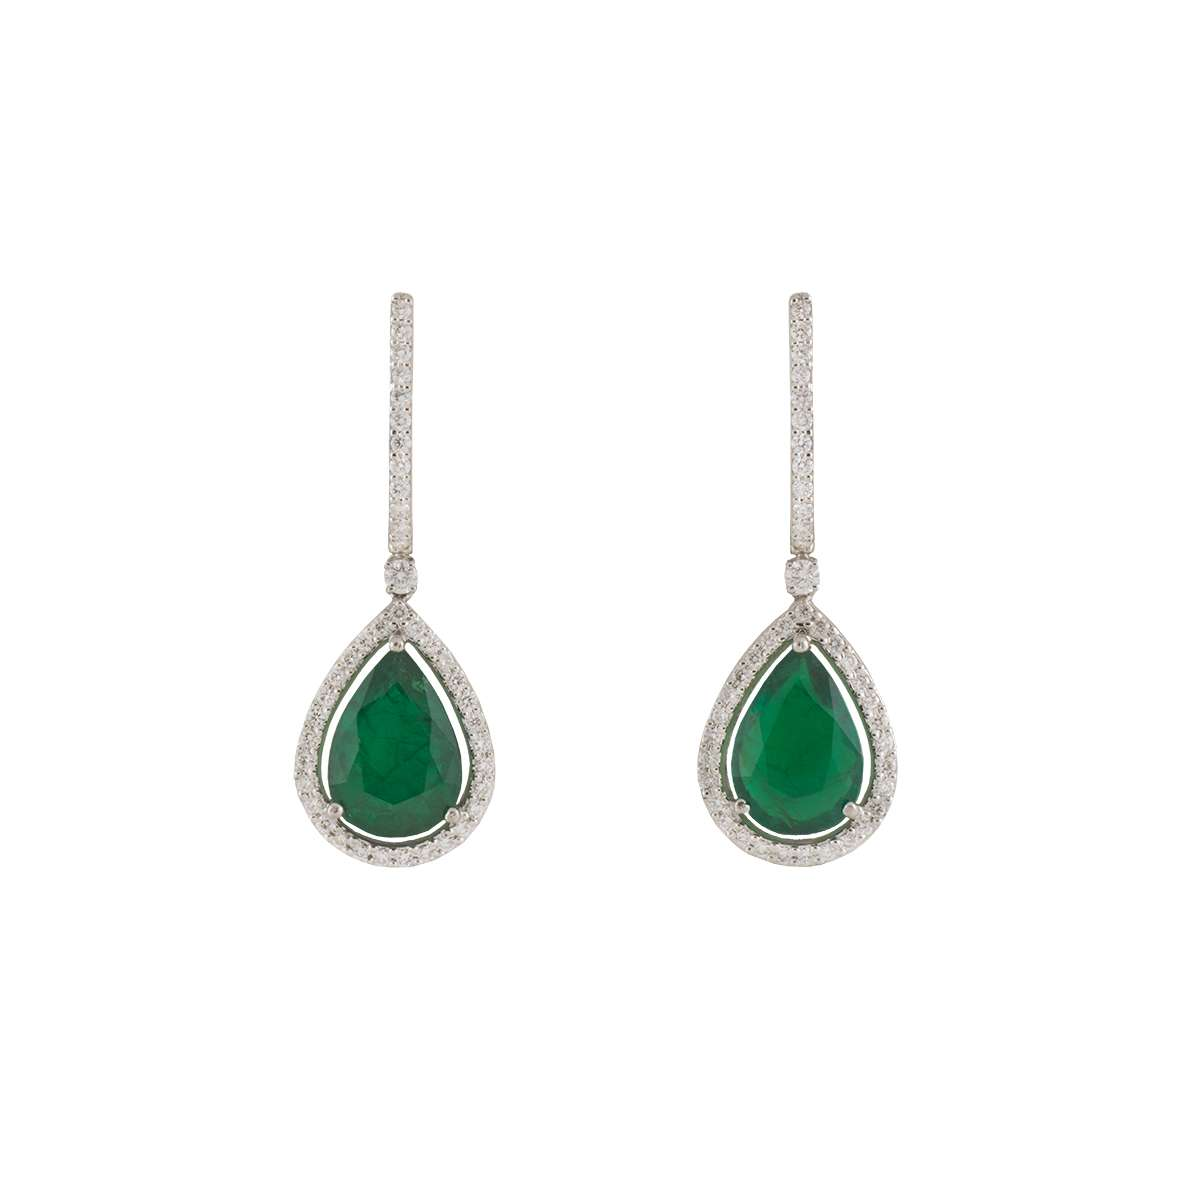 18k White Gold Emerald and Diamond Drop Earrings 7.57ct